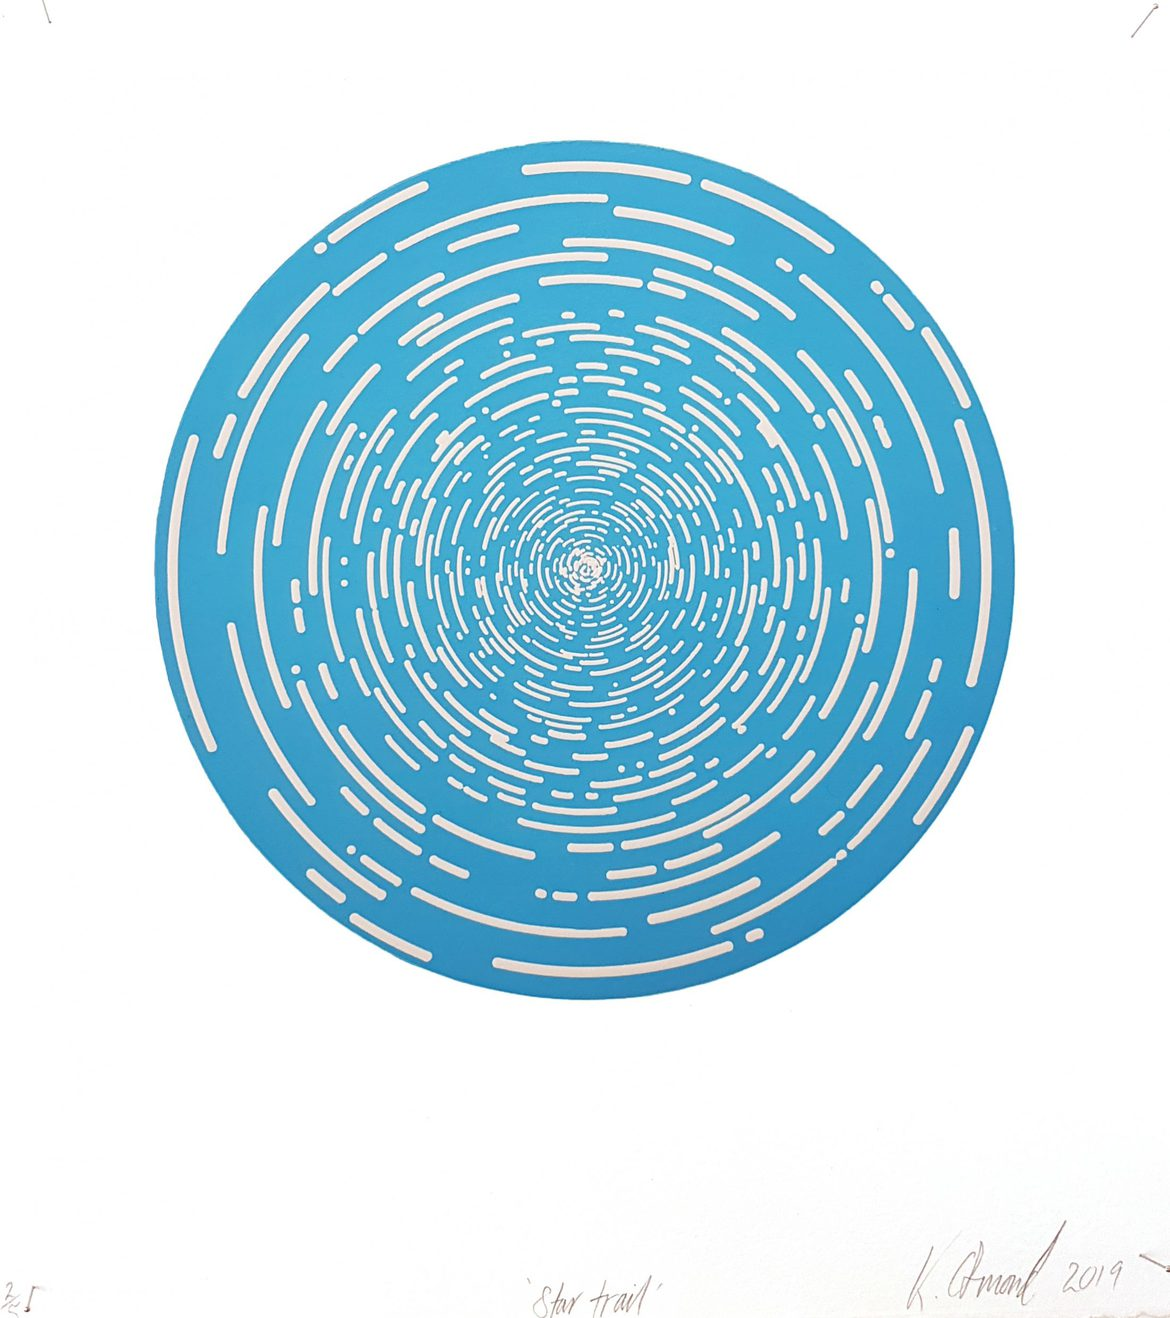 Star Trail (Sky Blue), woodblock print, 300gsm hahnemühle deckled edge etching paper, edition of 5 +1AP, 35 x 31 cm